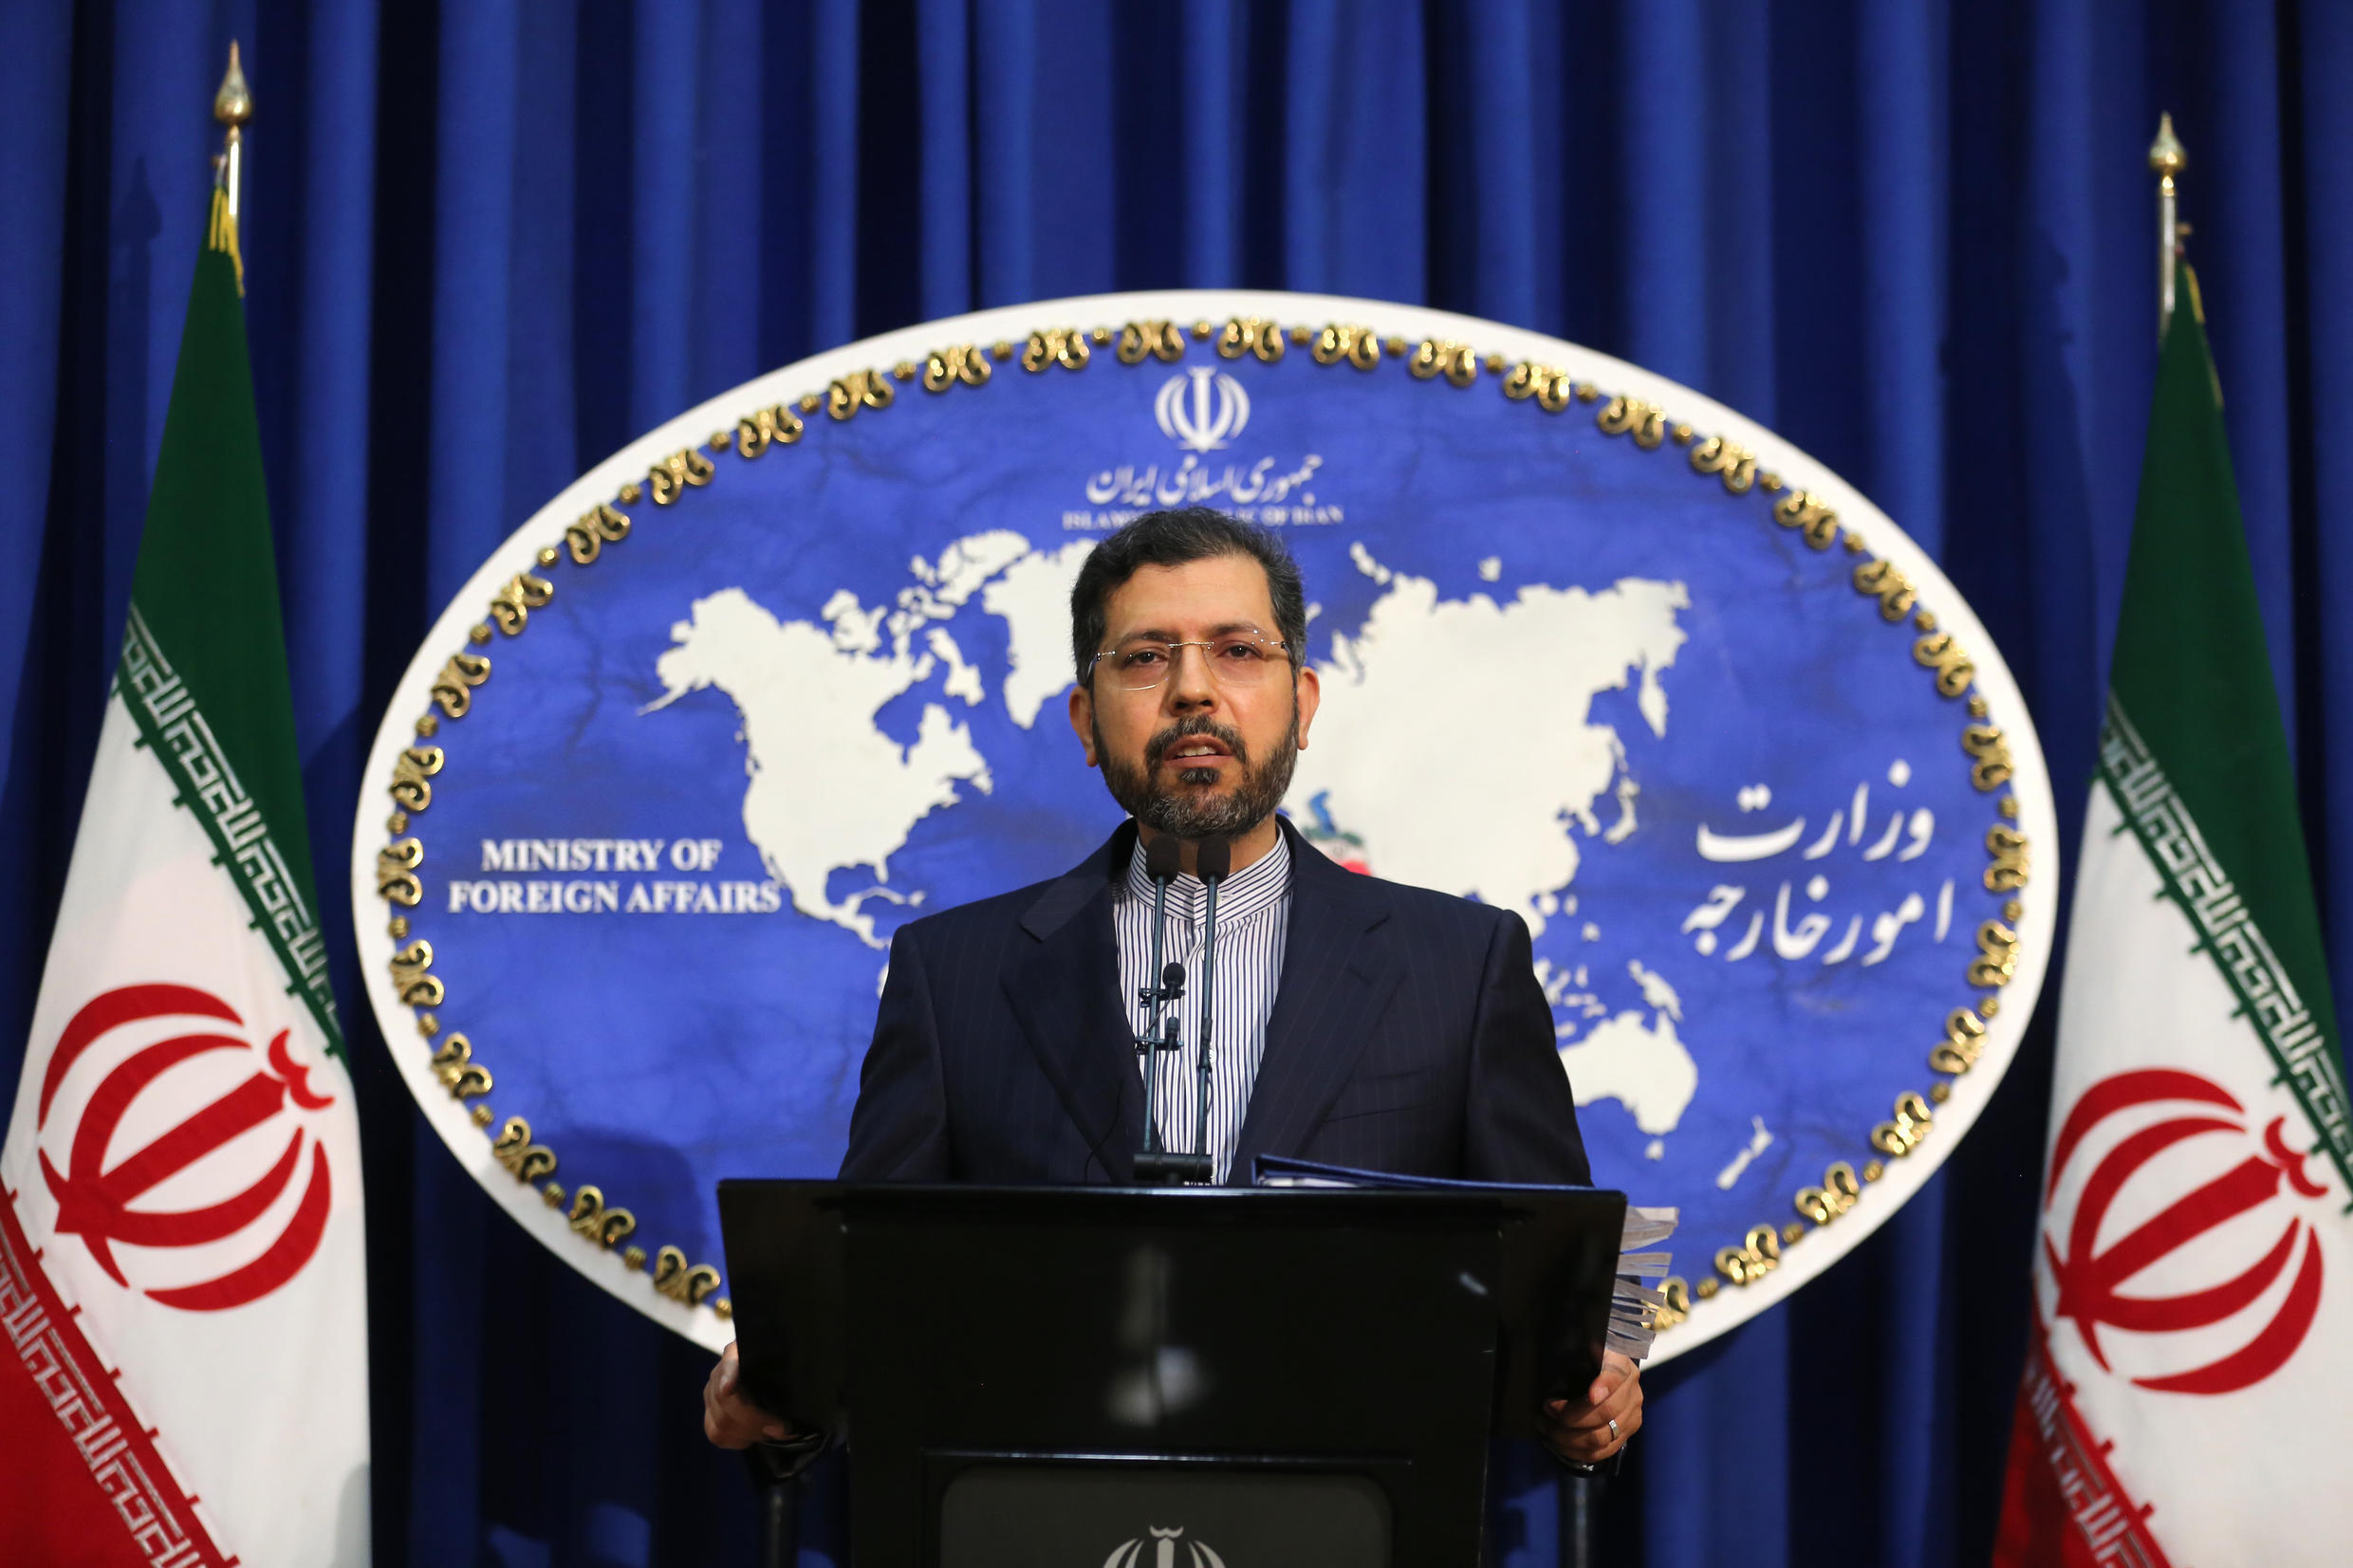 Iranian foreign ministry spokesman Saeed Khatibzadeh said Iran had ruled out a meeting proposed by the European Union on the troubled 2015 nuclear deal